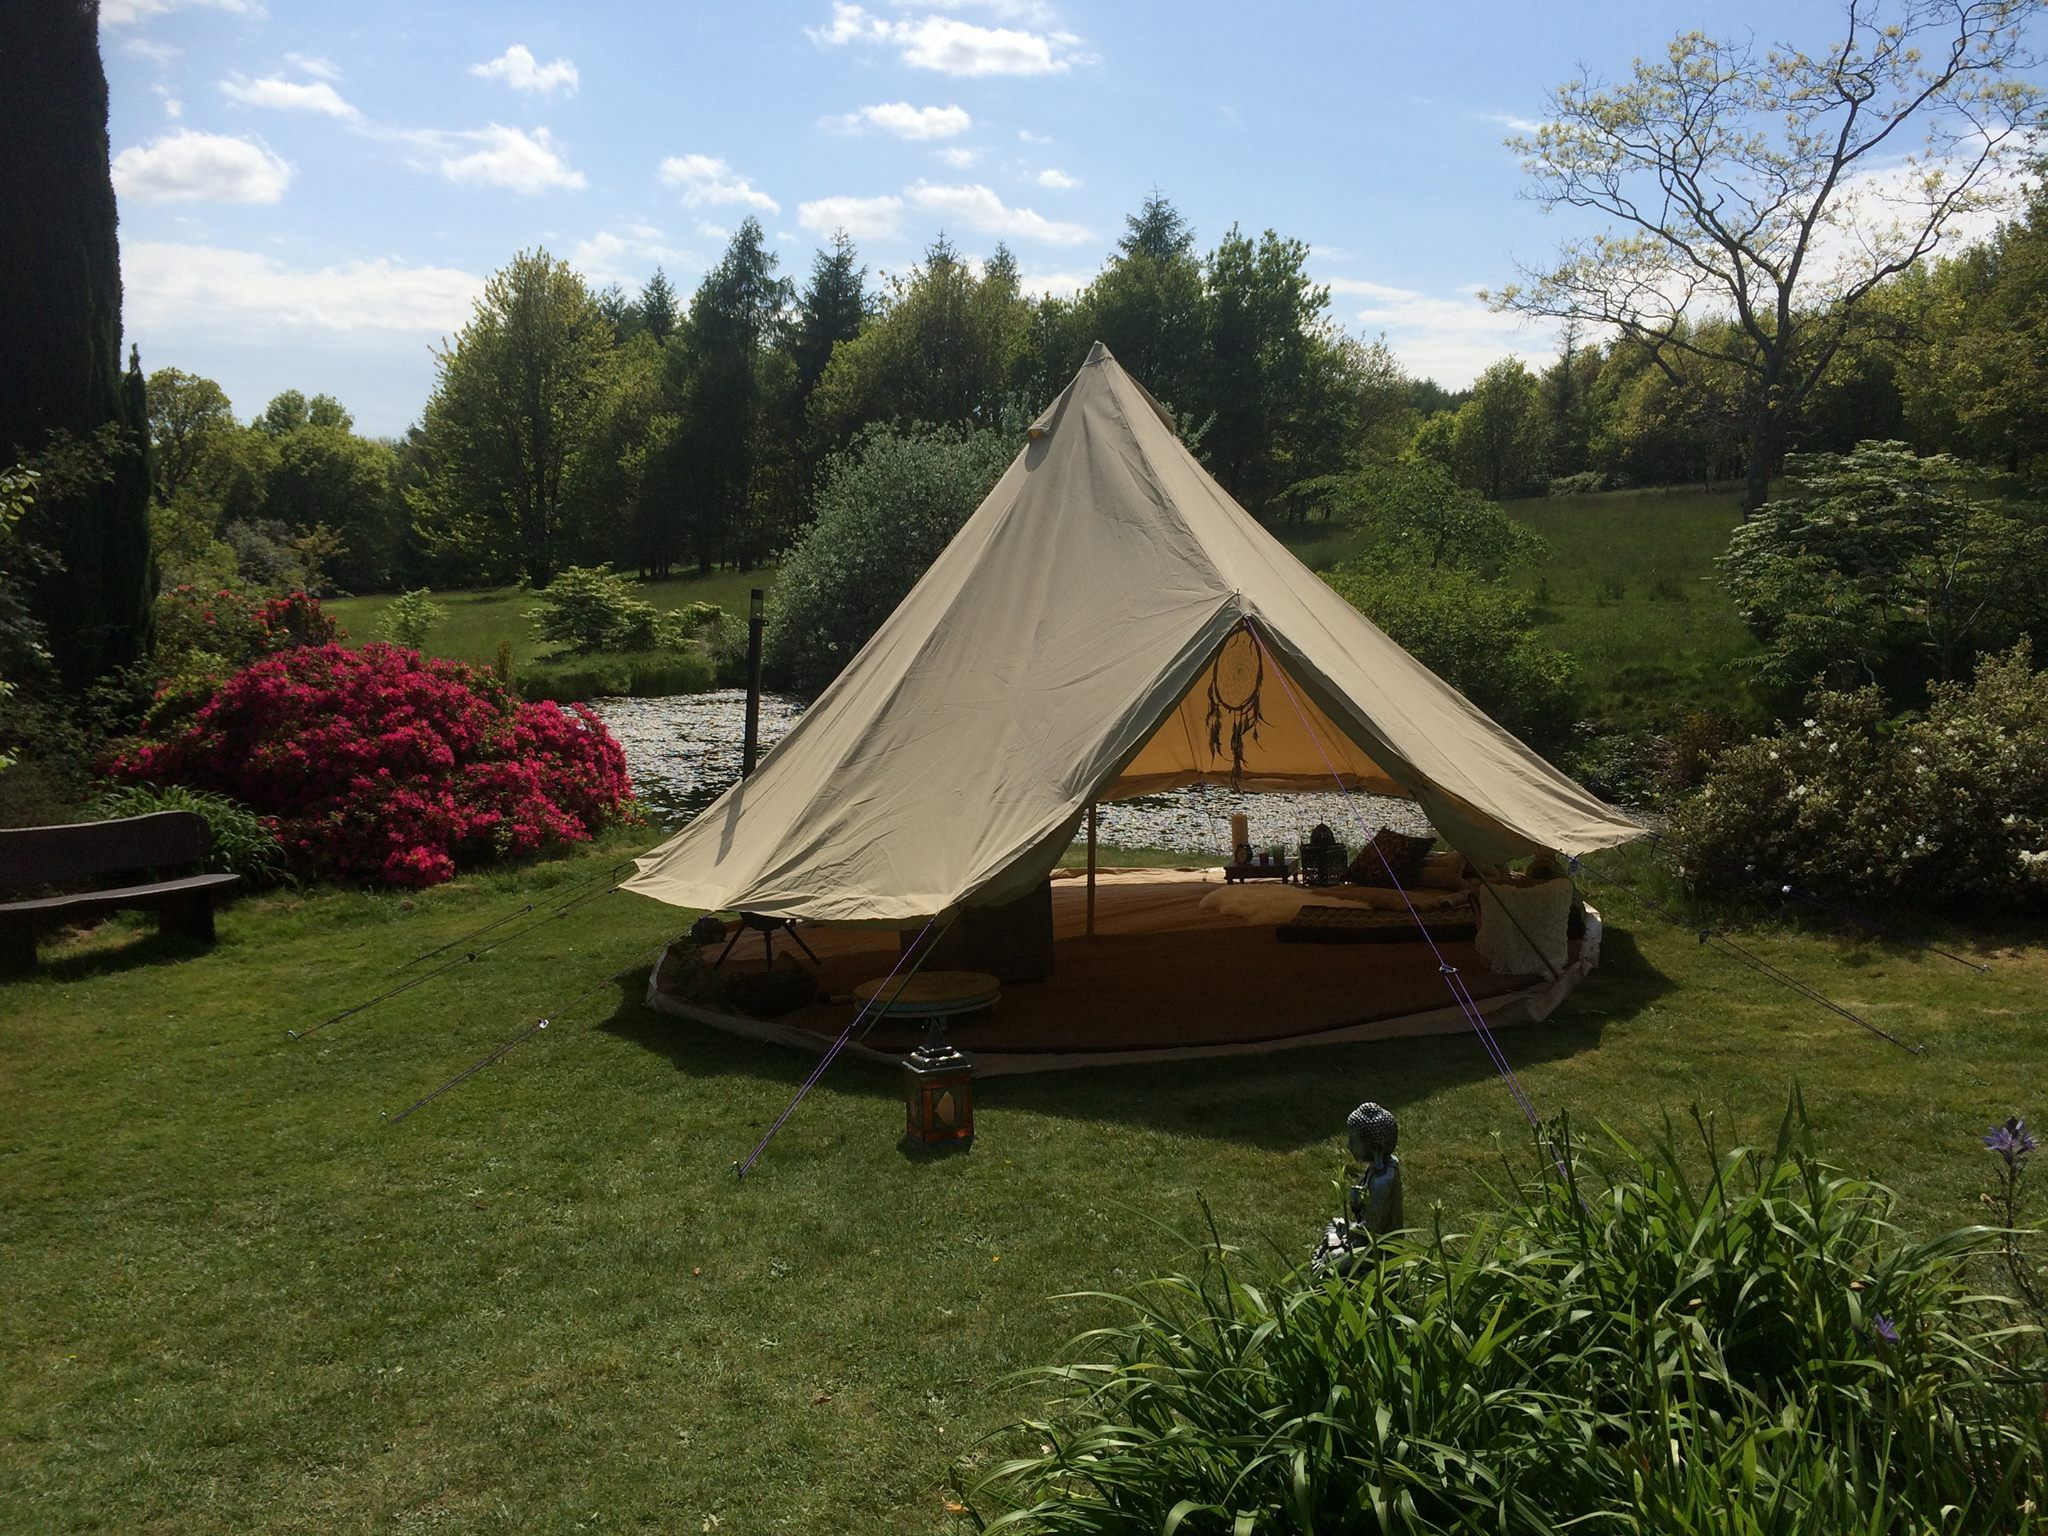 Boutique C&ing. Battersea London. Business. C&ing. Summer. Travel. Holiday · Boutique C&ingTent HireBell ... & Boutique Camping. Battersea London. Business. Camping. Summer ...